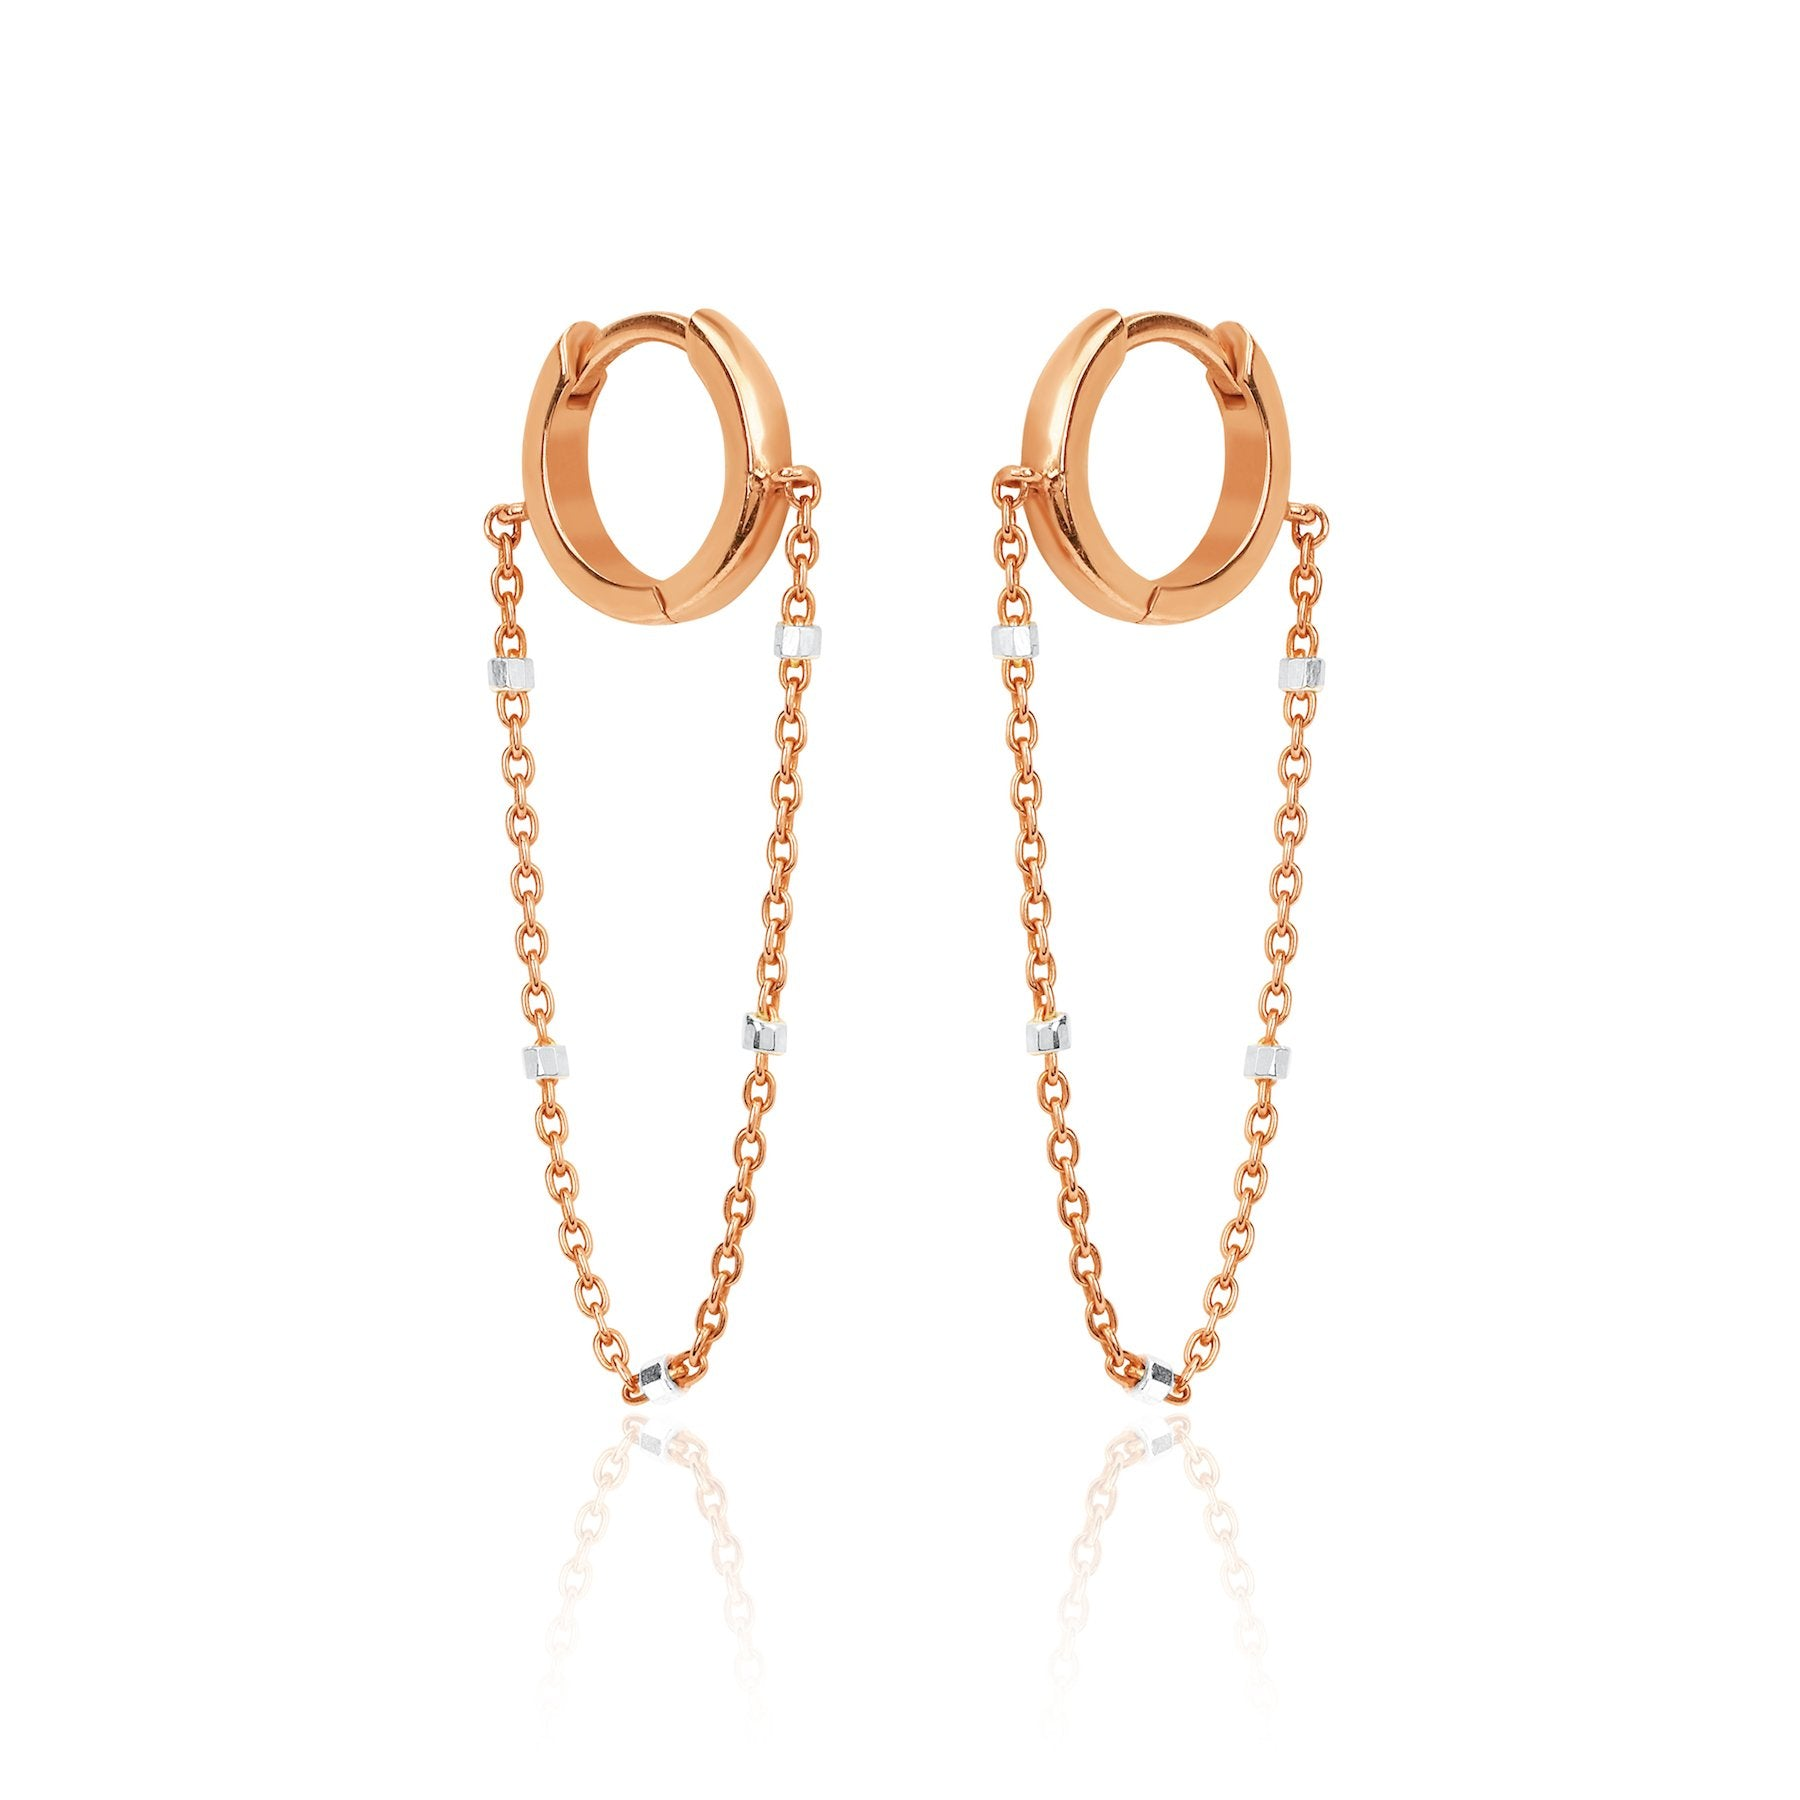 Solid Mini Goddess Chain Earrings